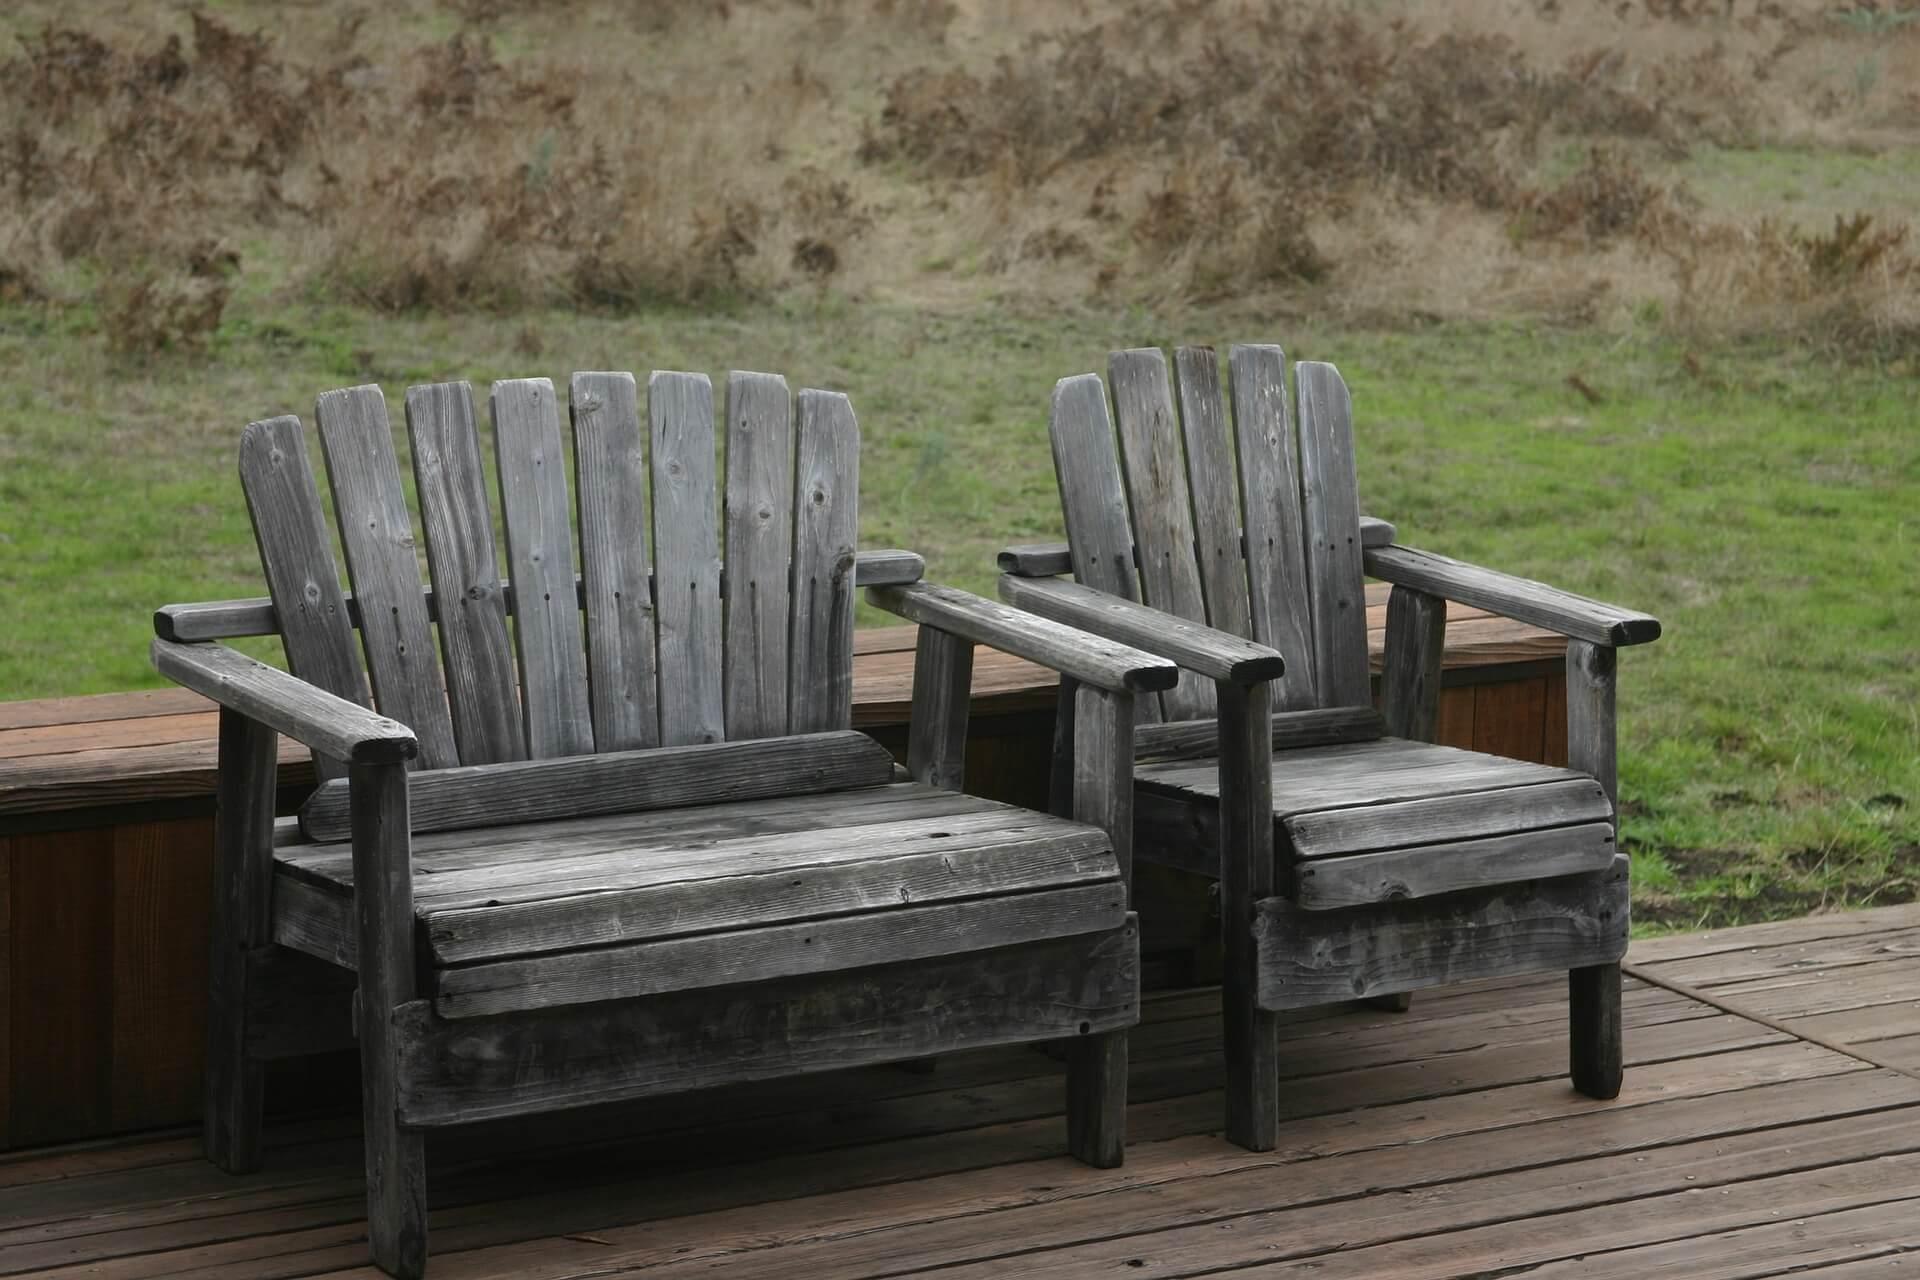 Luxury outdoor furniture to beautify your home